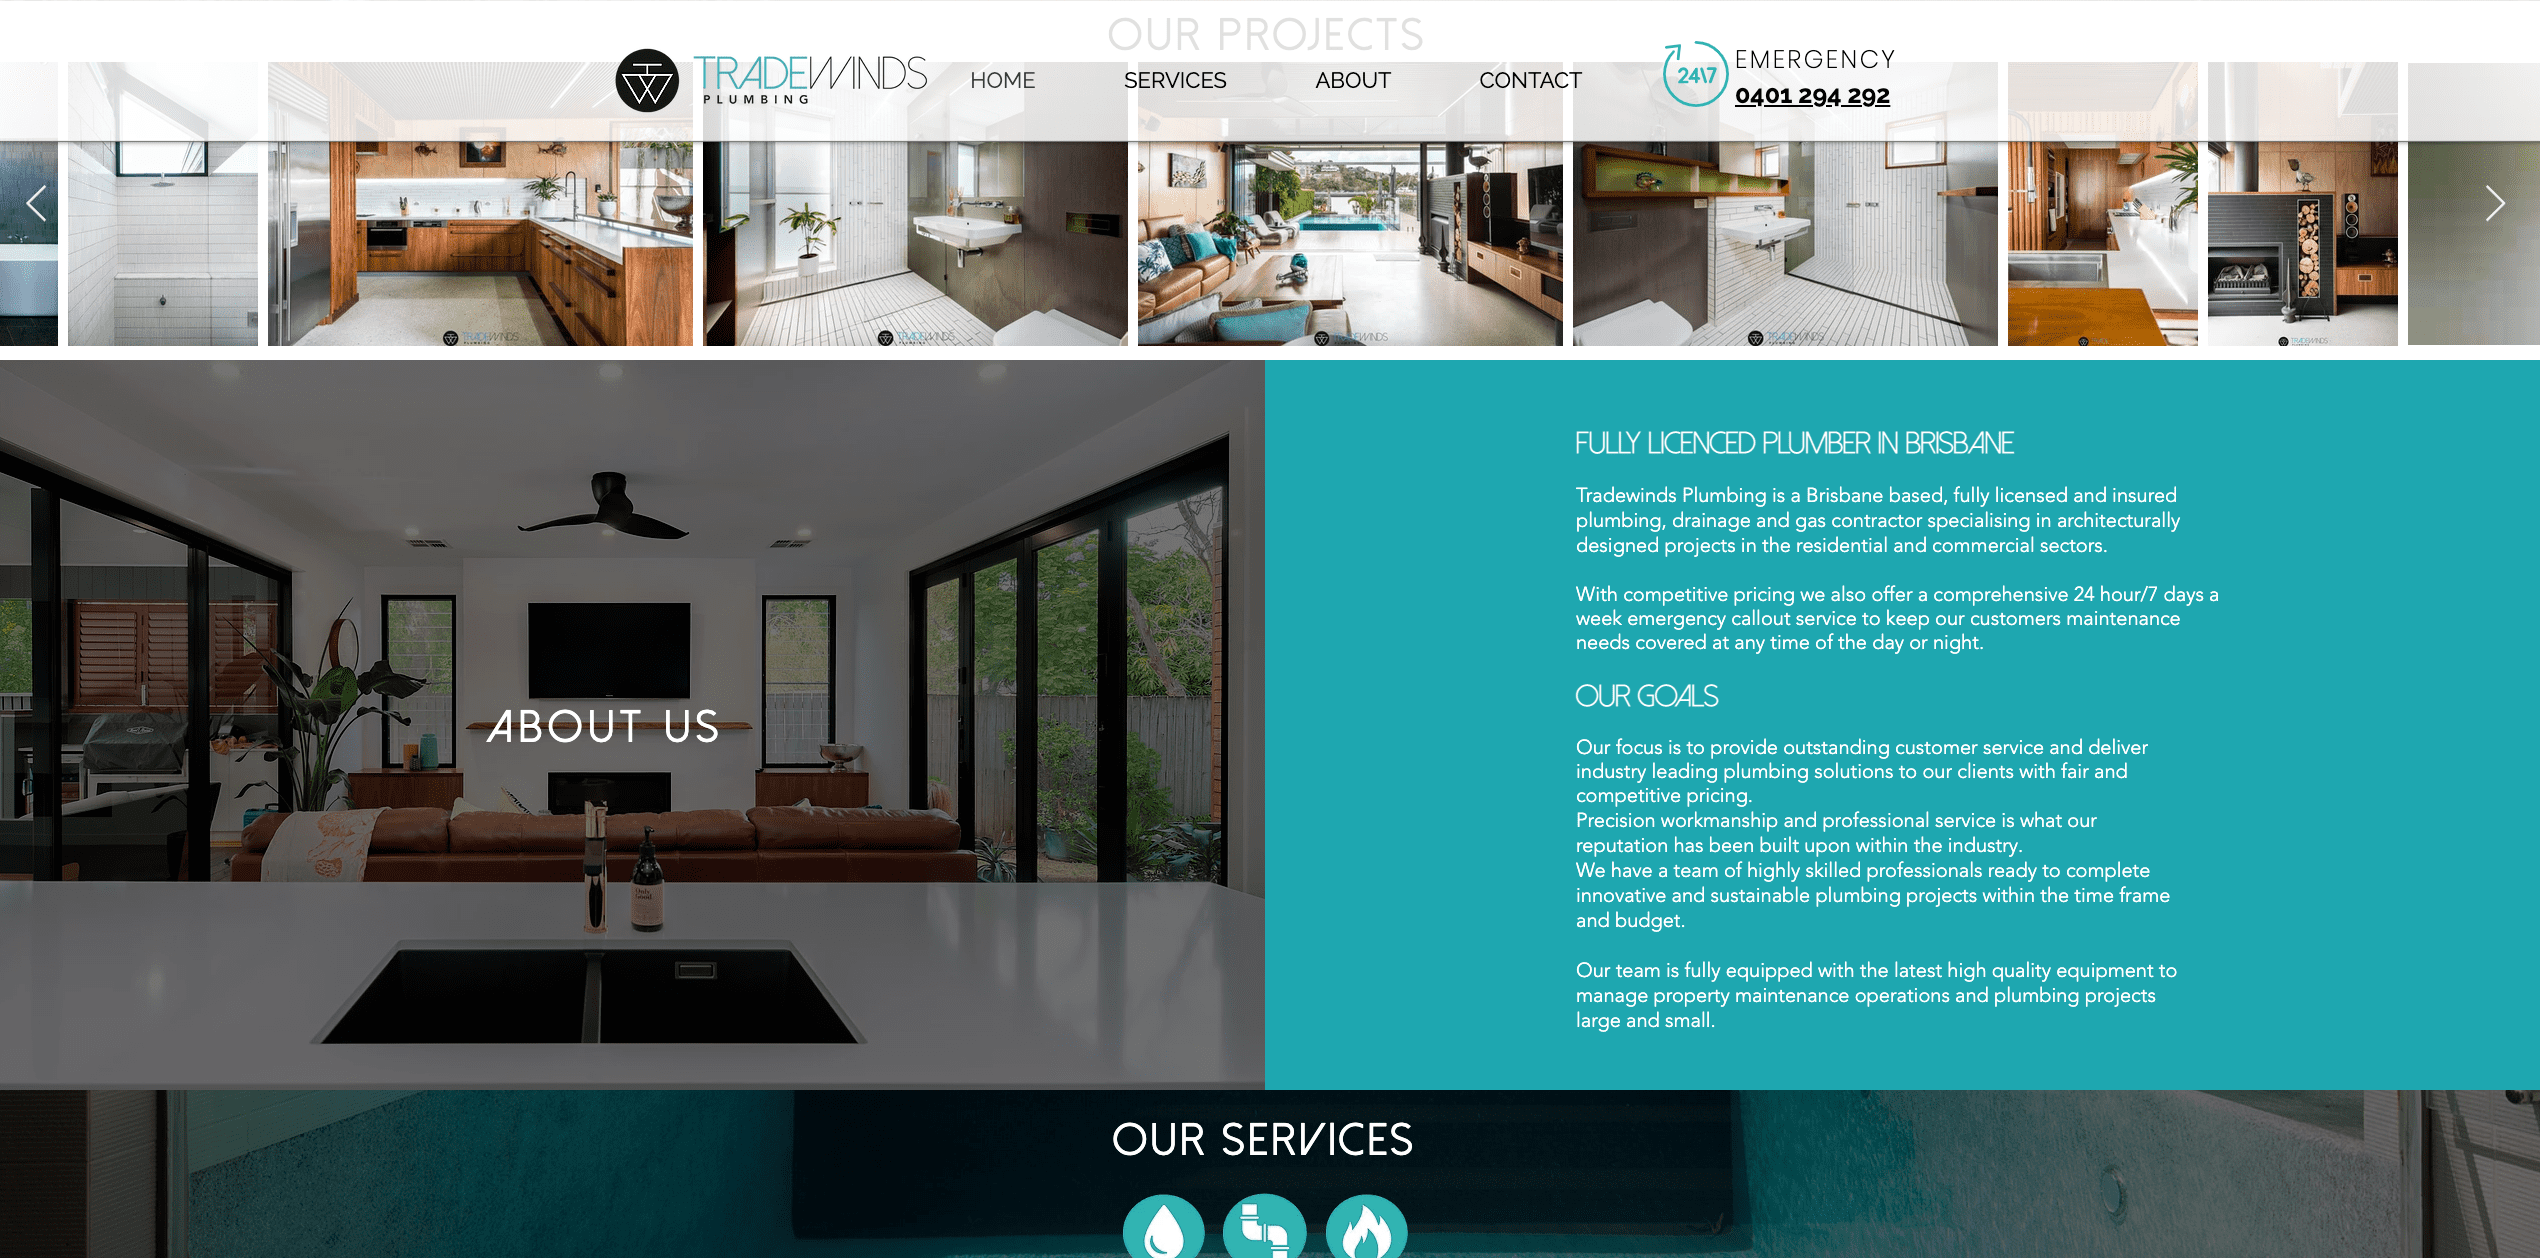 Example of a website for a plumbing business